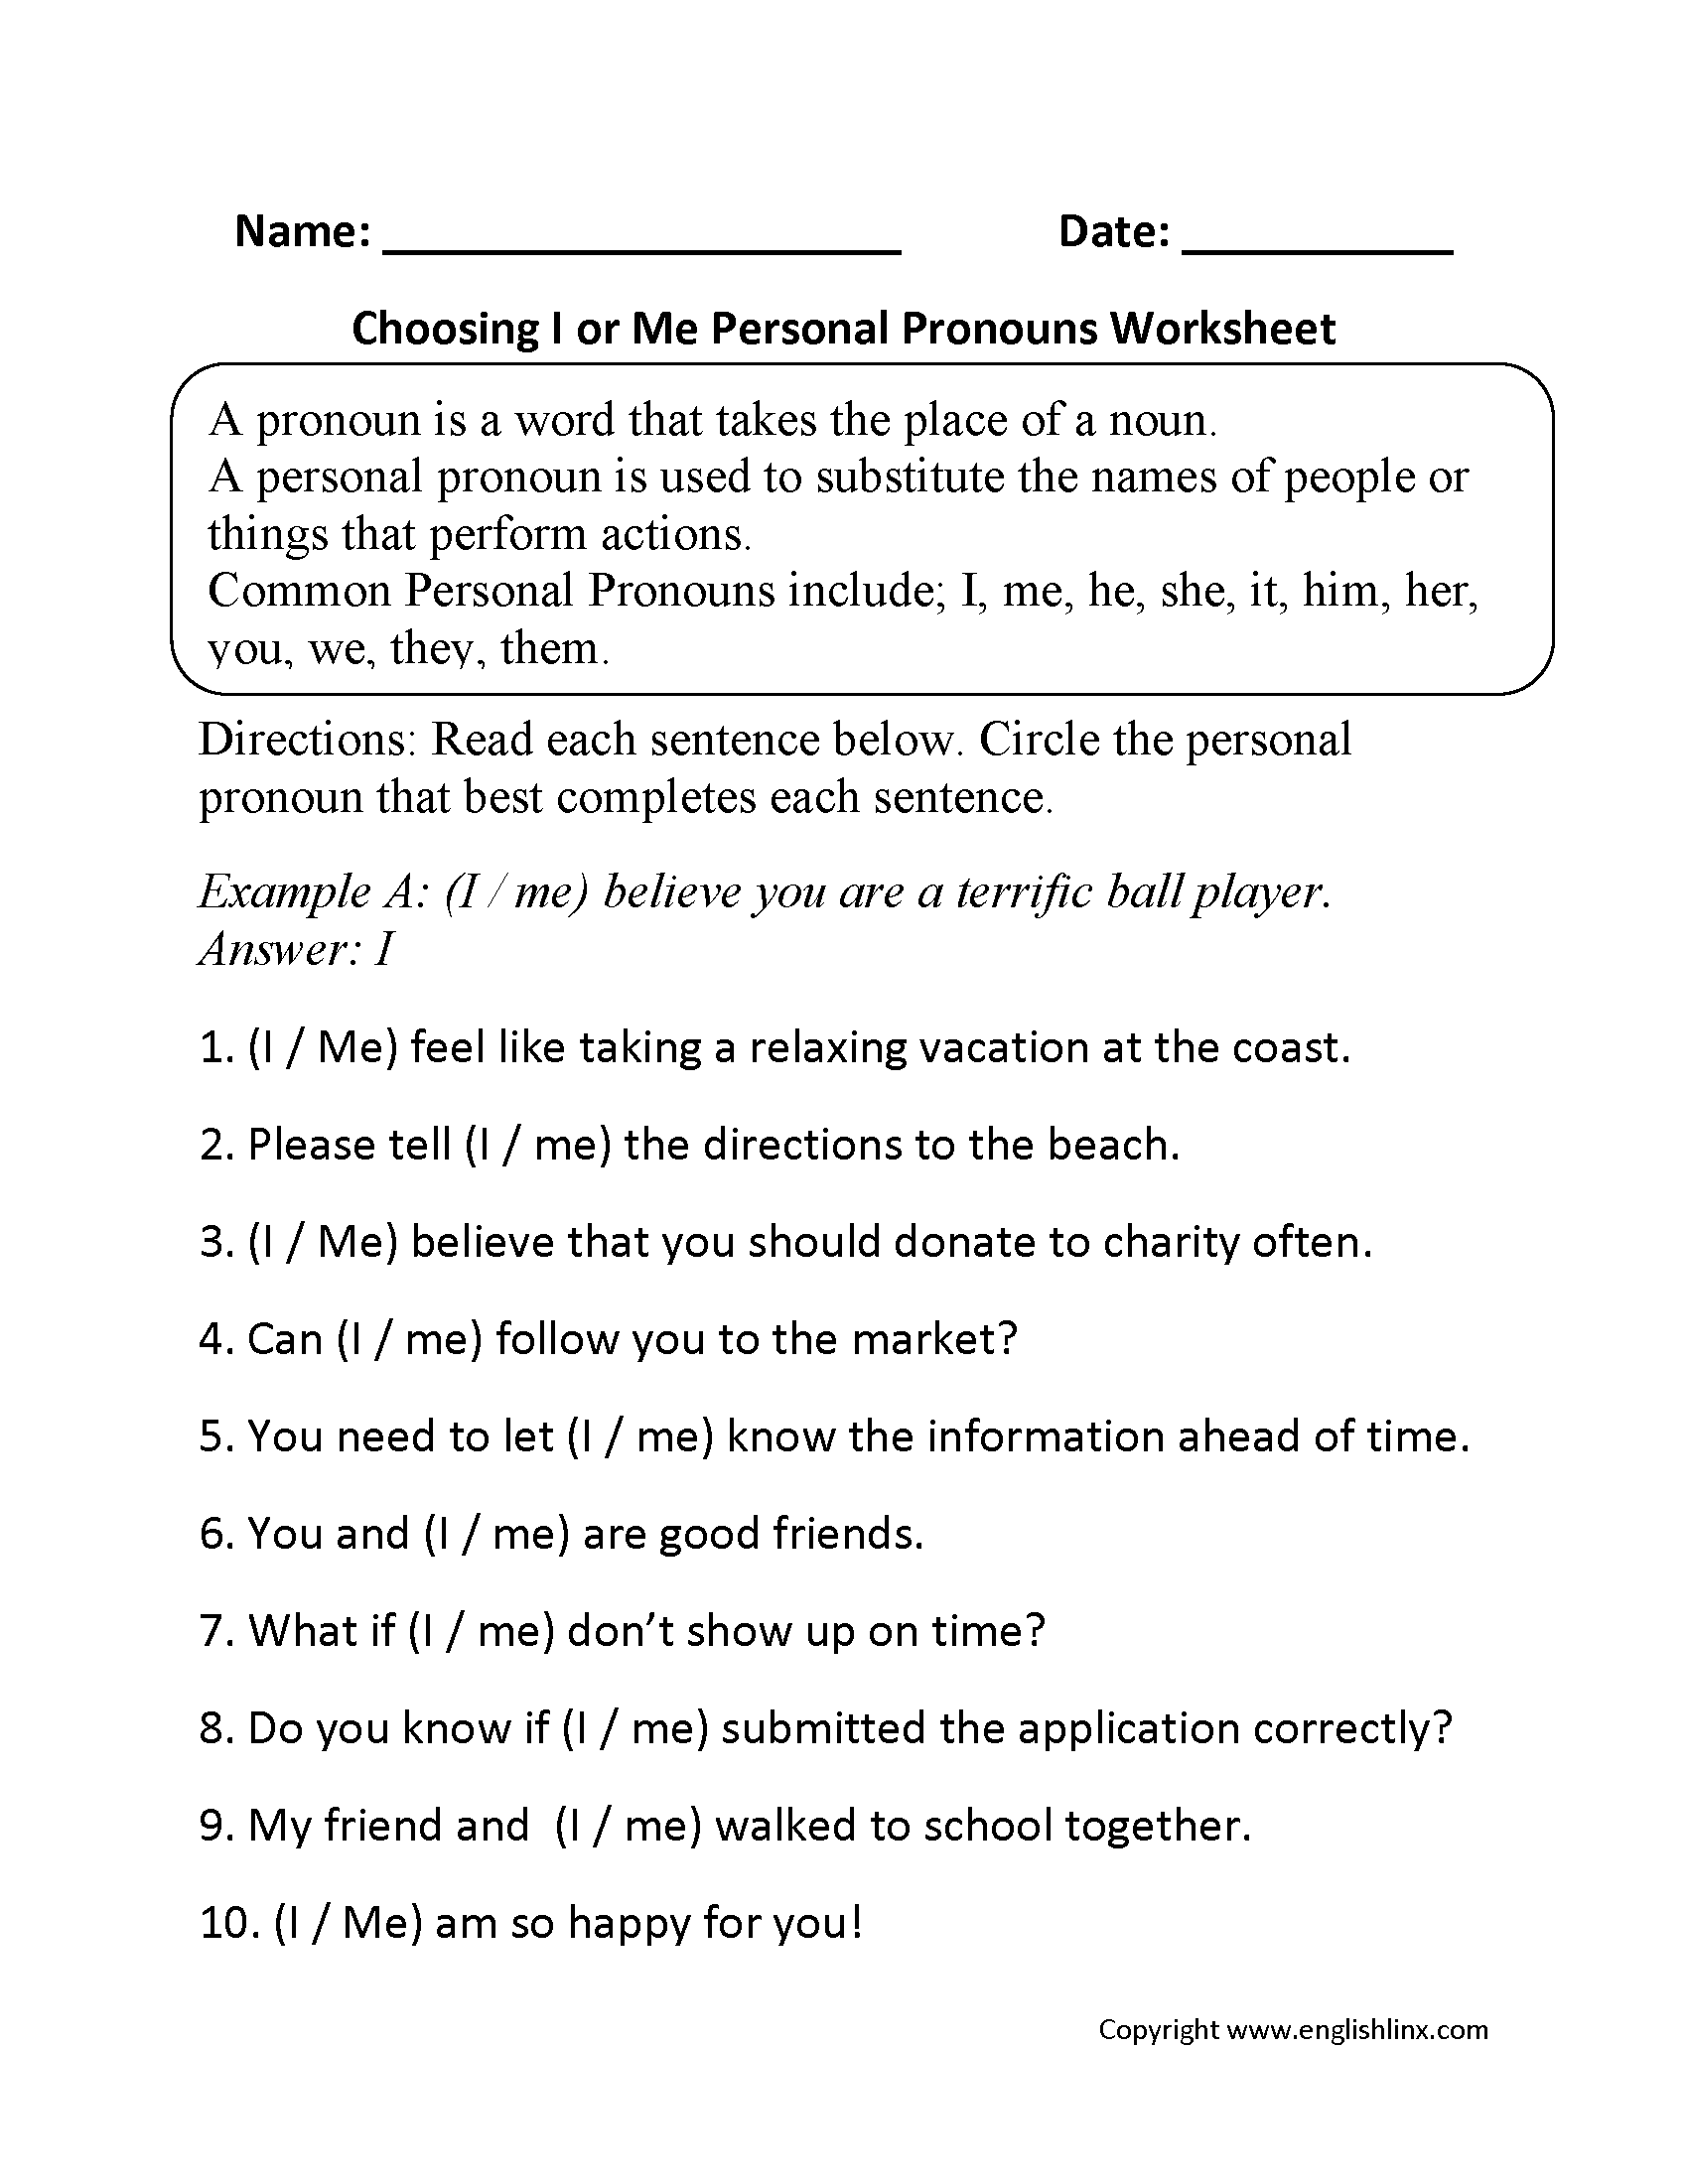 Personal Pronouns Worksheets | Choosing I or Me Personal Pronouns ...